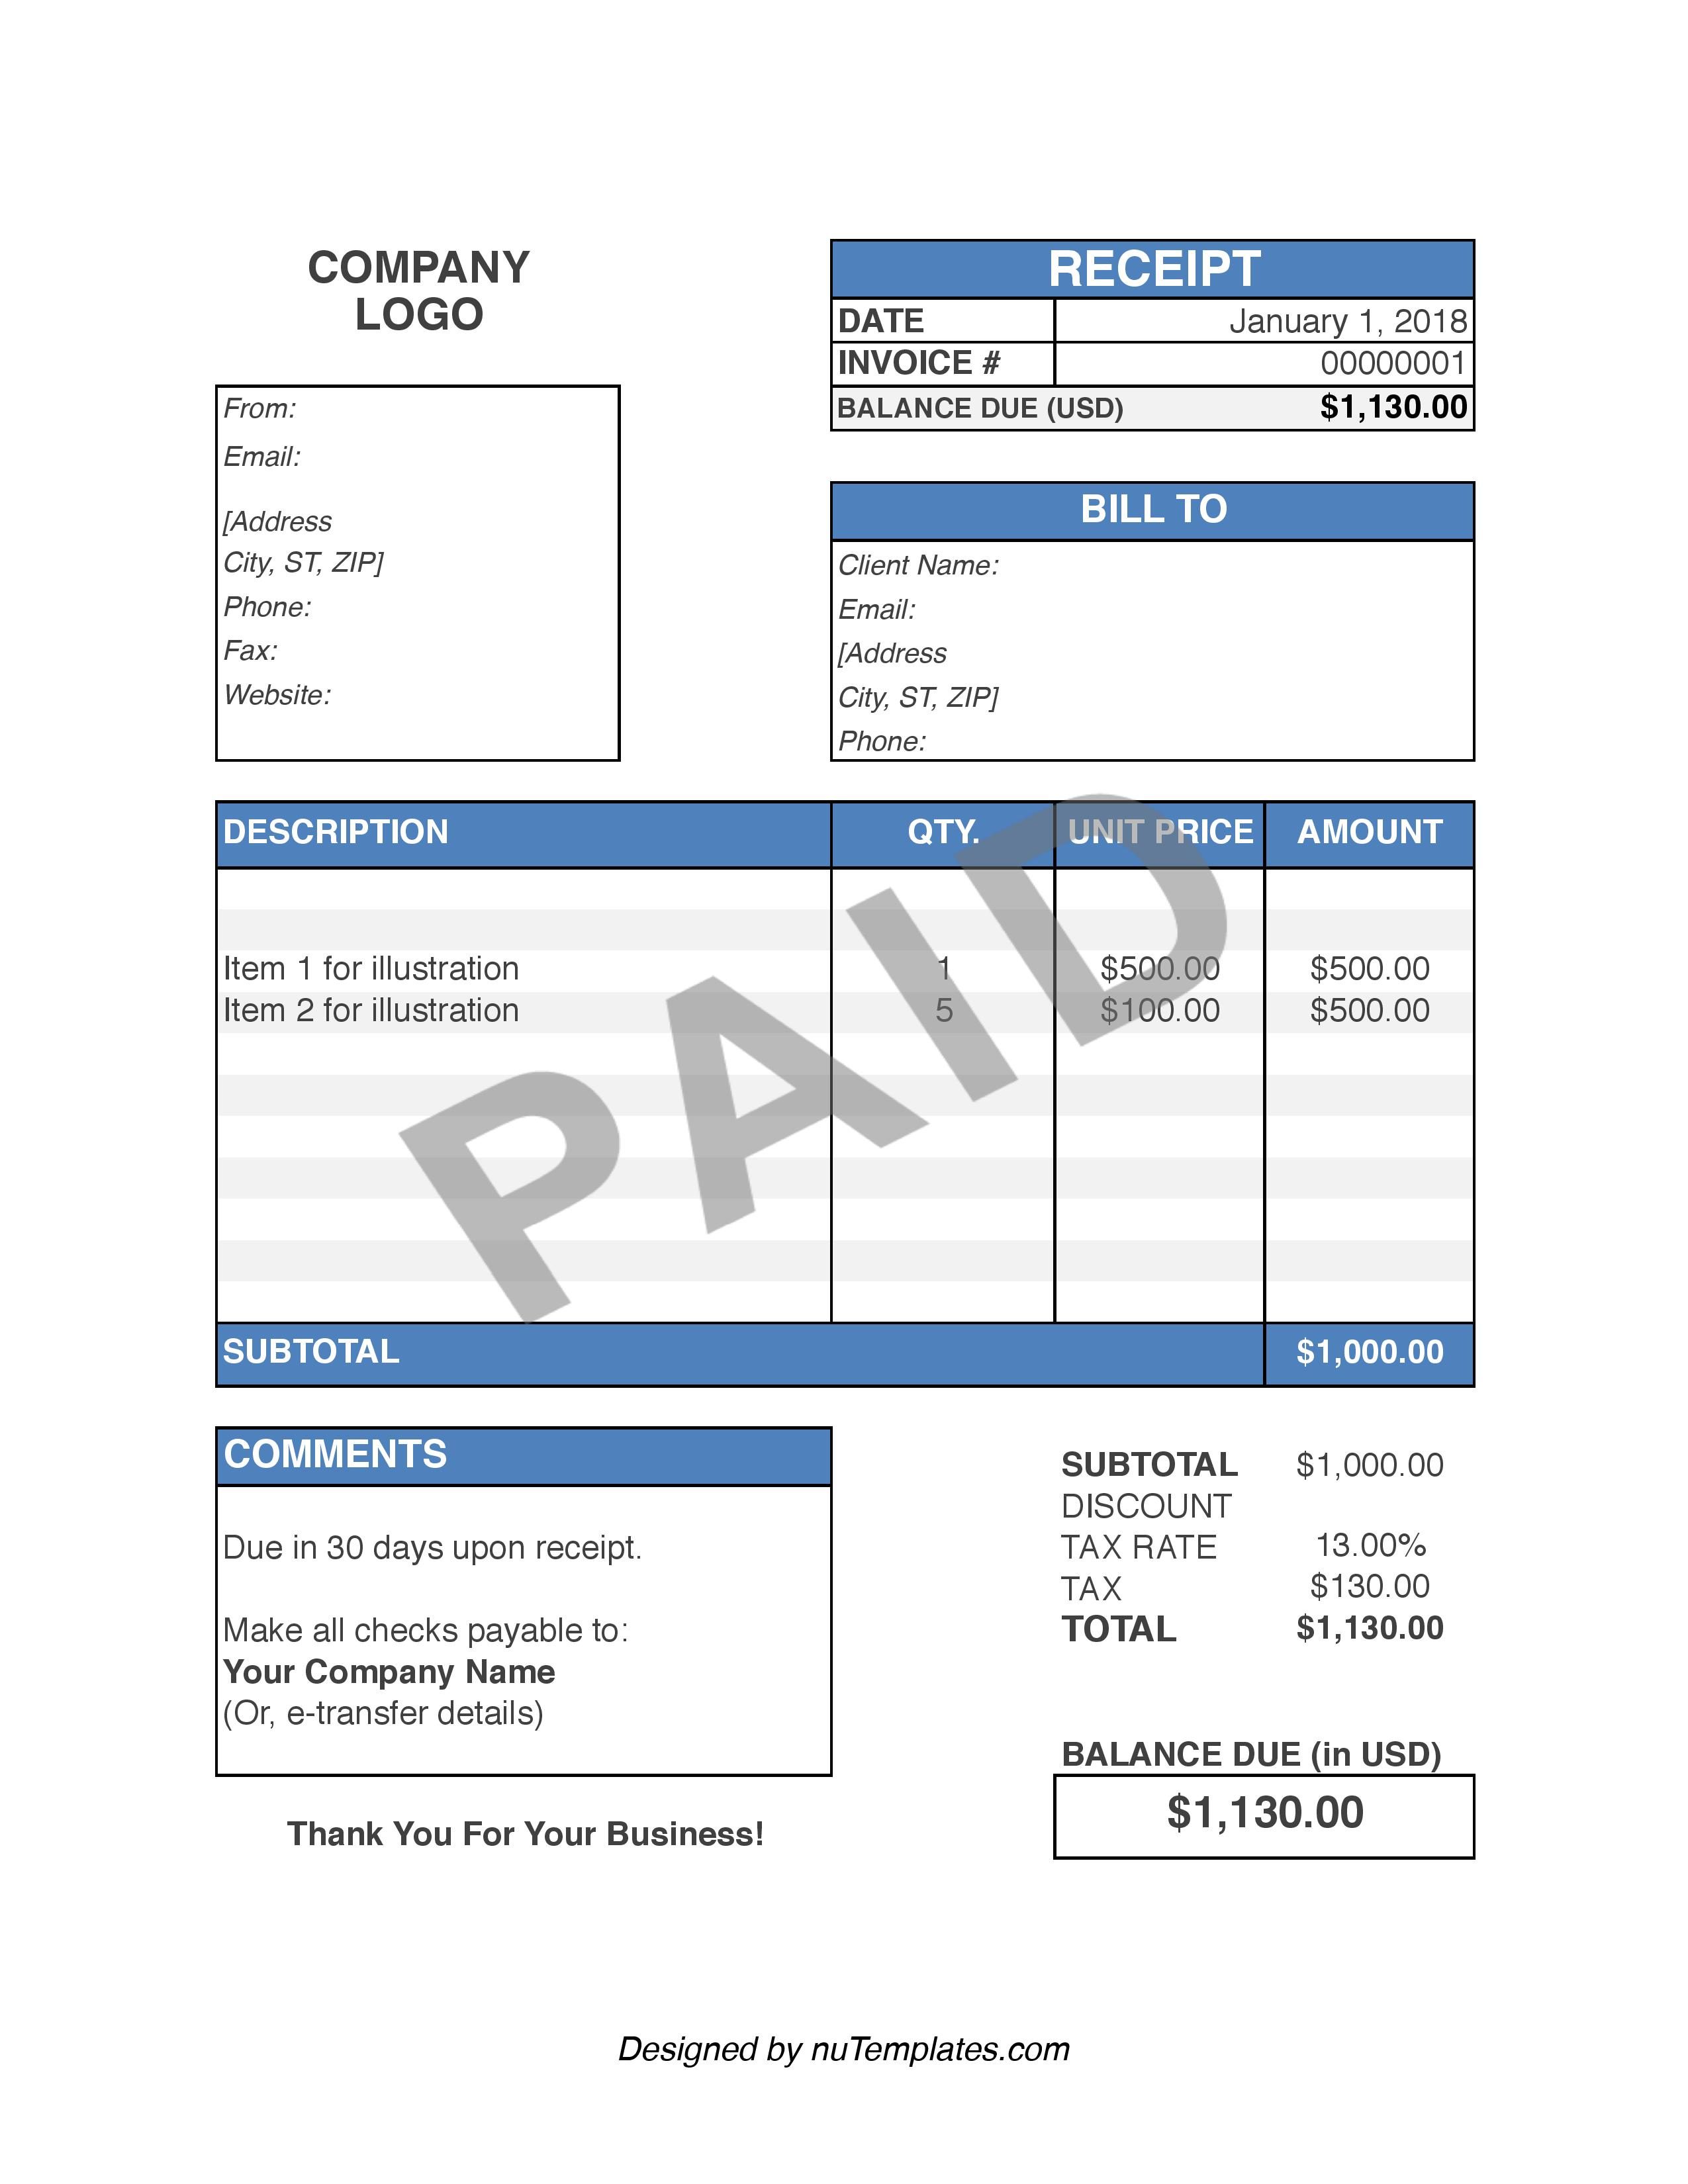 Purchase Receipt Template - Purchase Receipts | nuTemplates